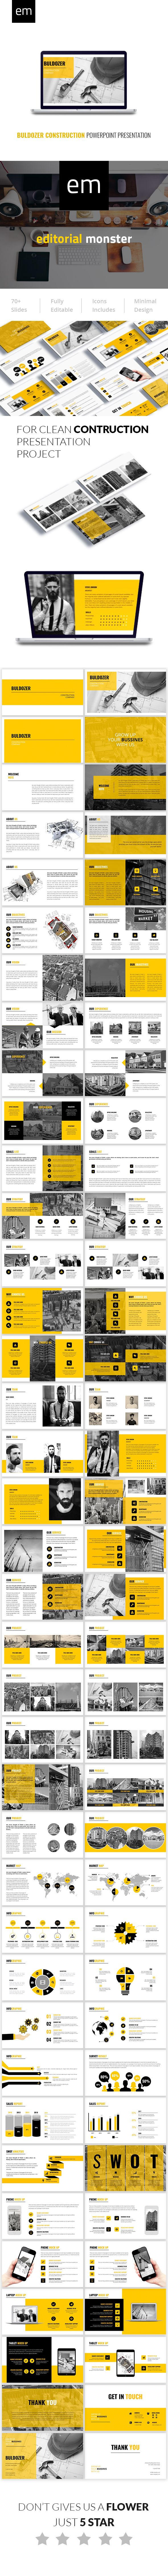 Buldozer construction powerpoint presentation powerpoint buldozer construction powerpoint presentation alramifo Images